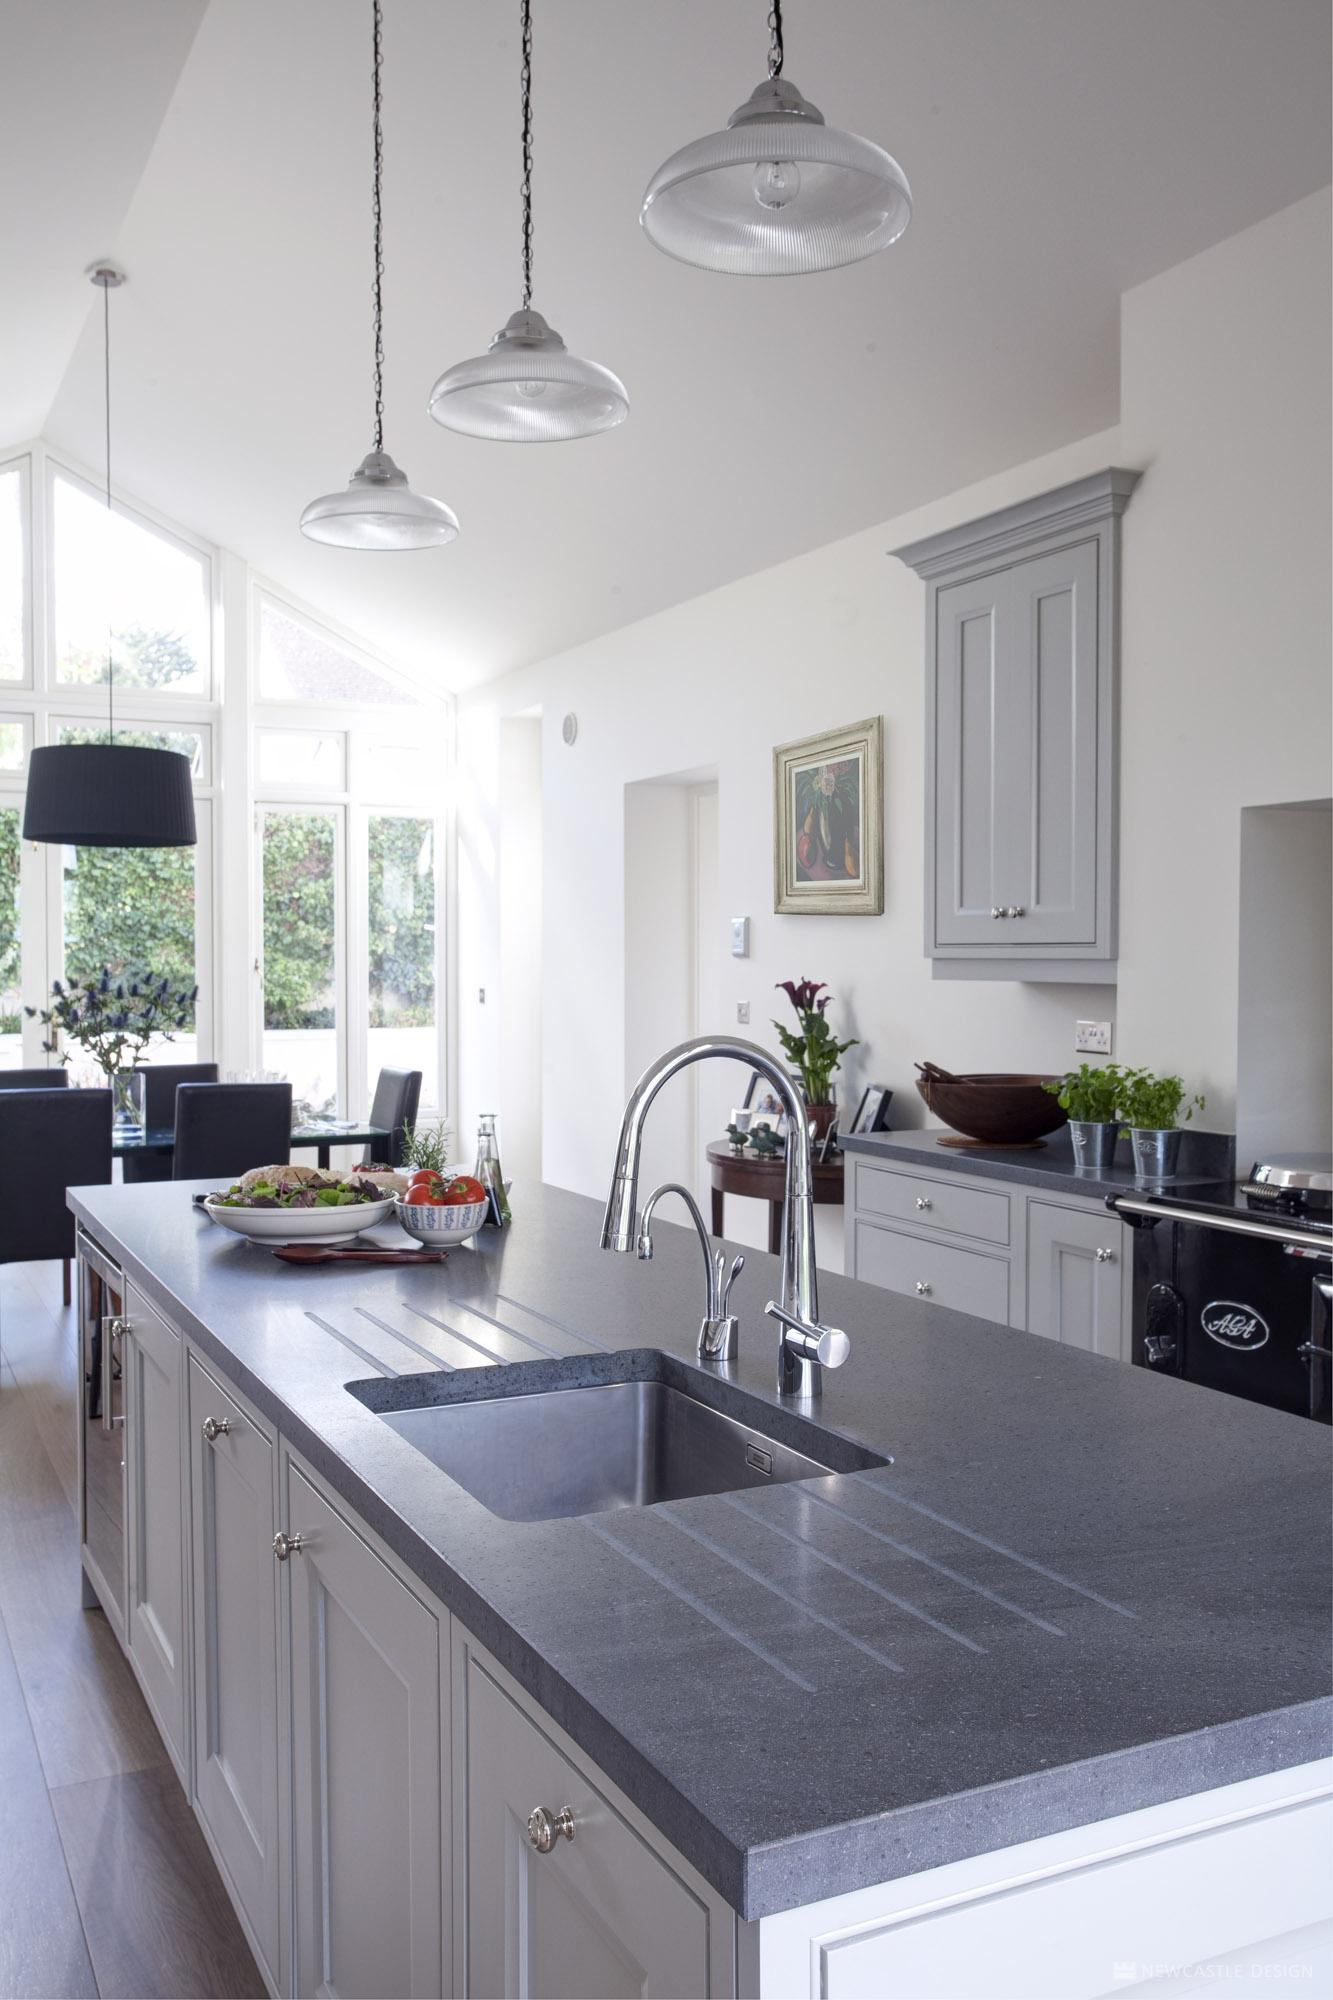 Georgian Interior Design Kitchen | Newcastle Design Showroom